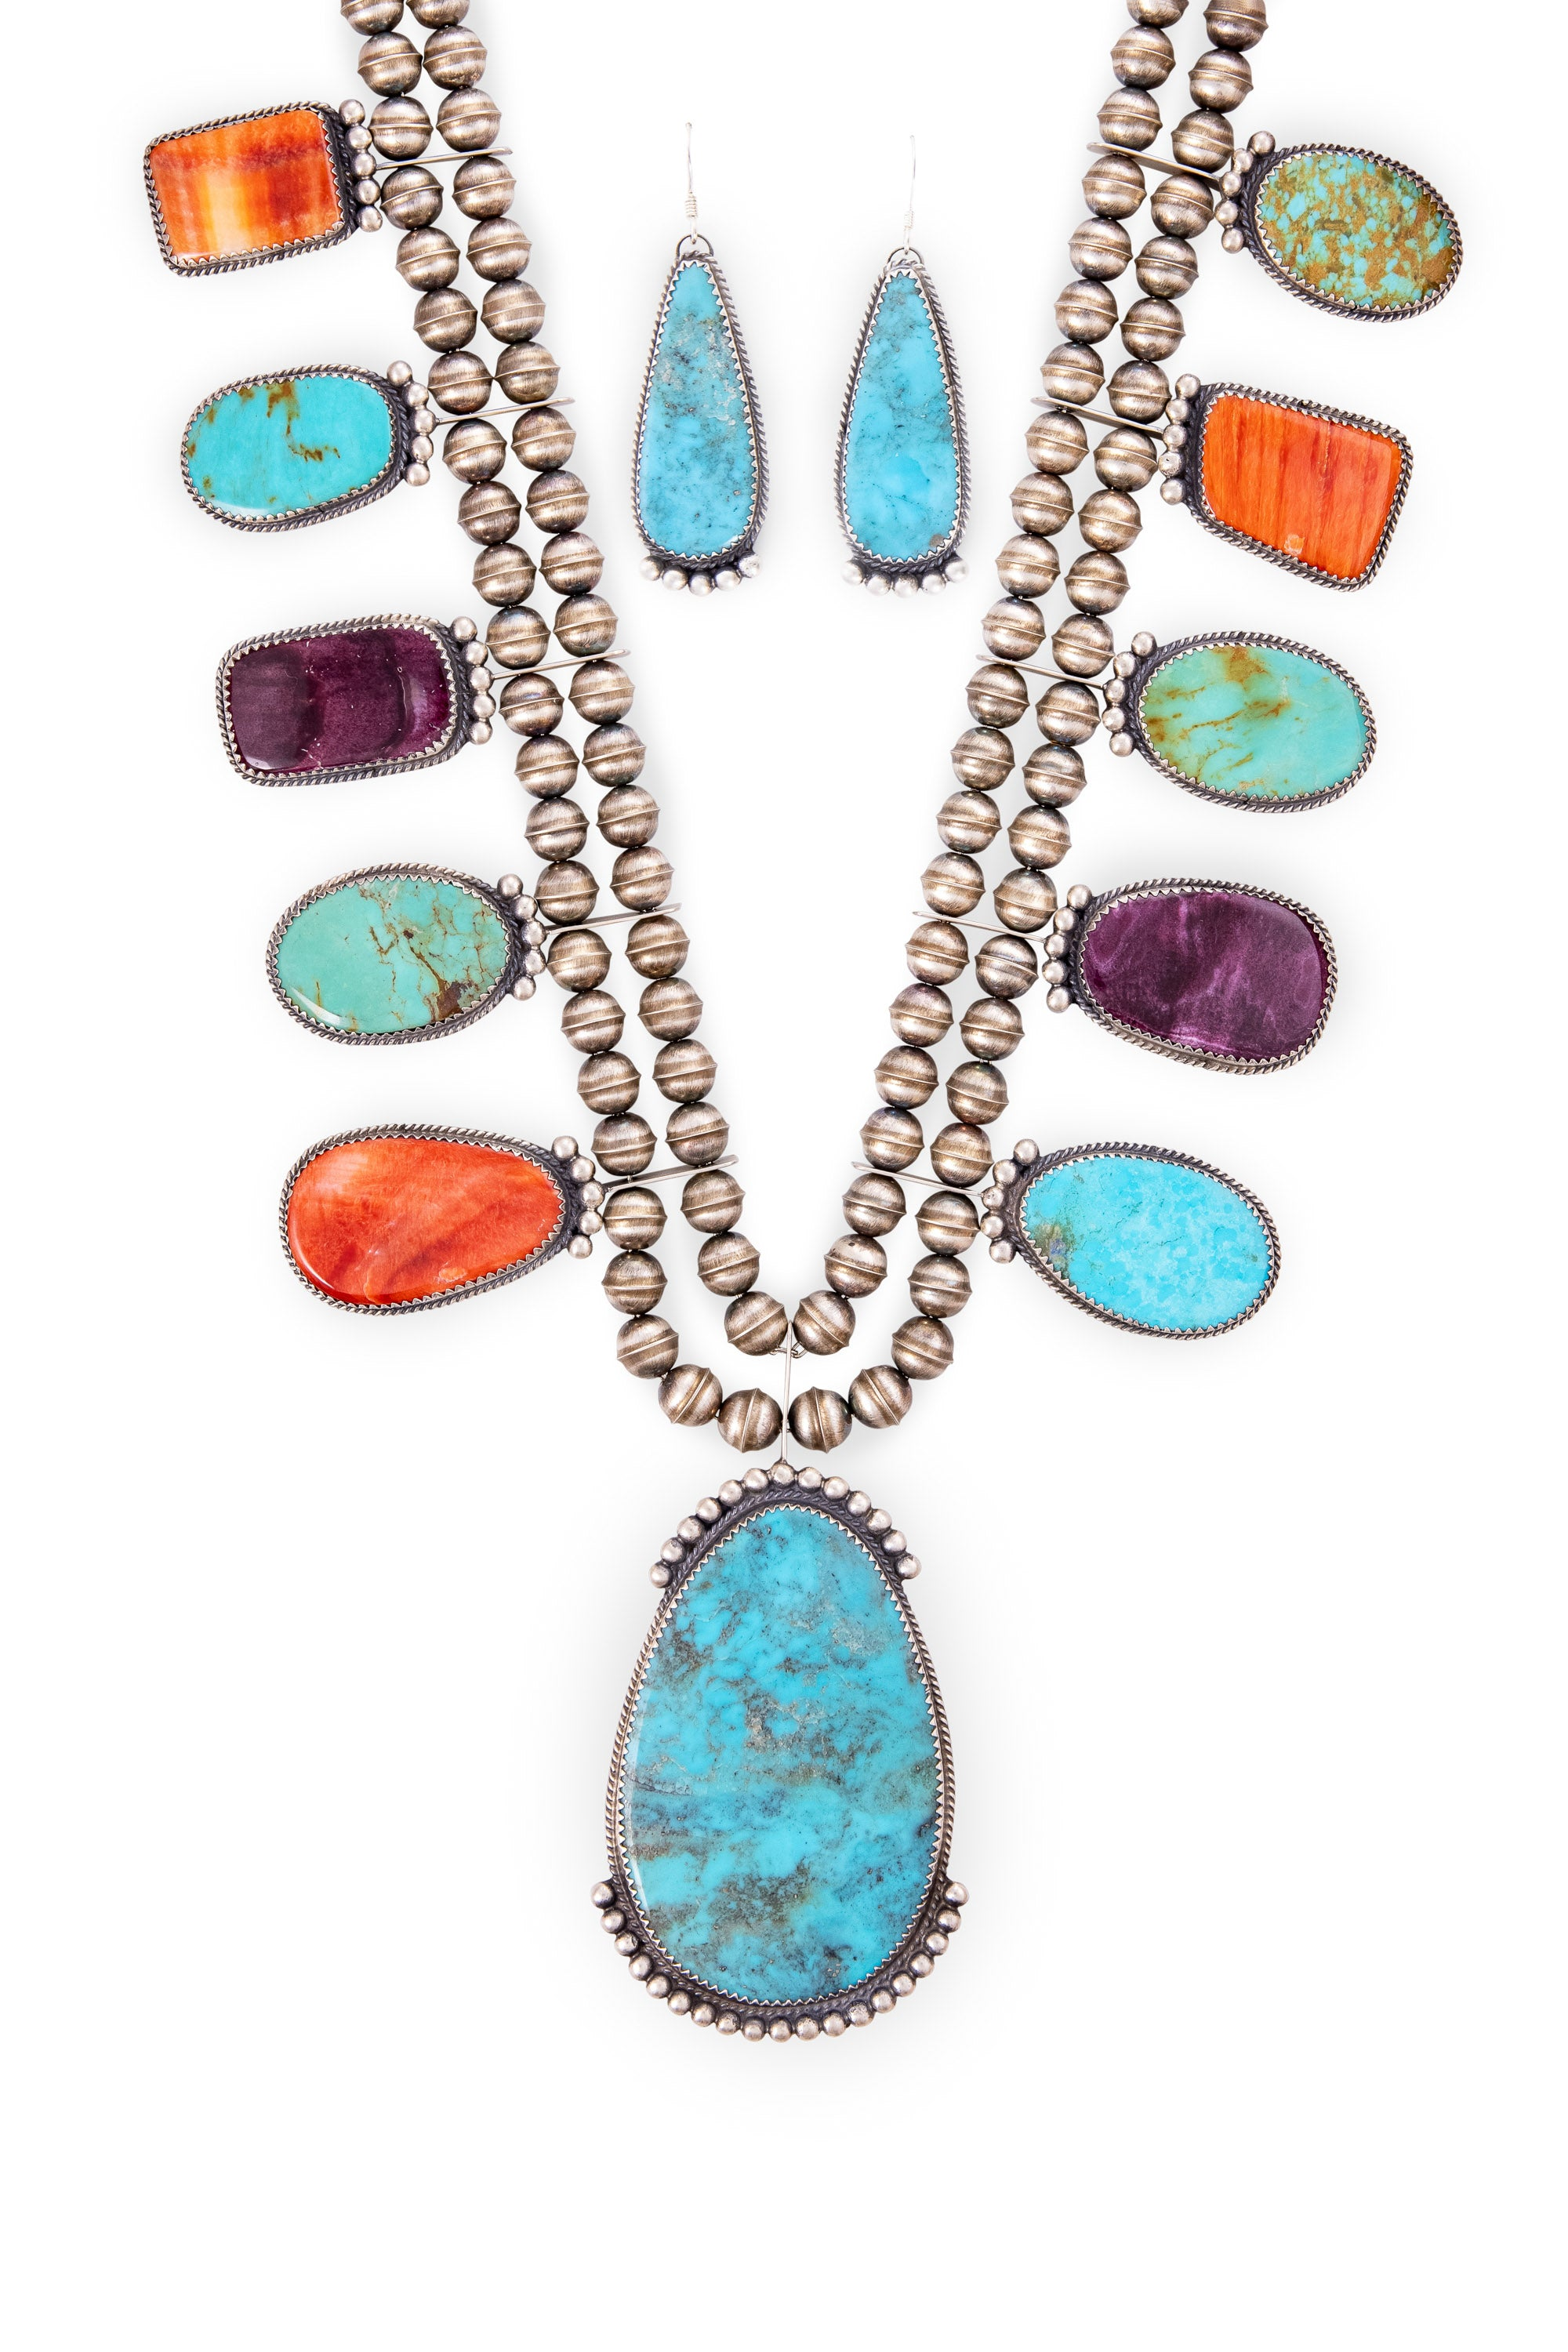 Necklace & Earring Set, Mixed Stones, Hallmark, 1119